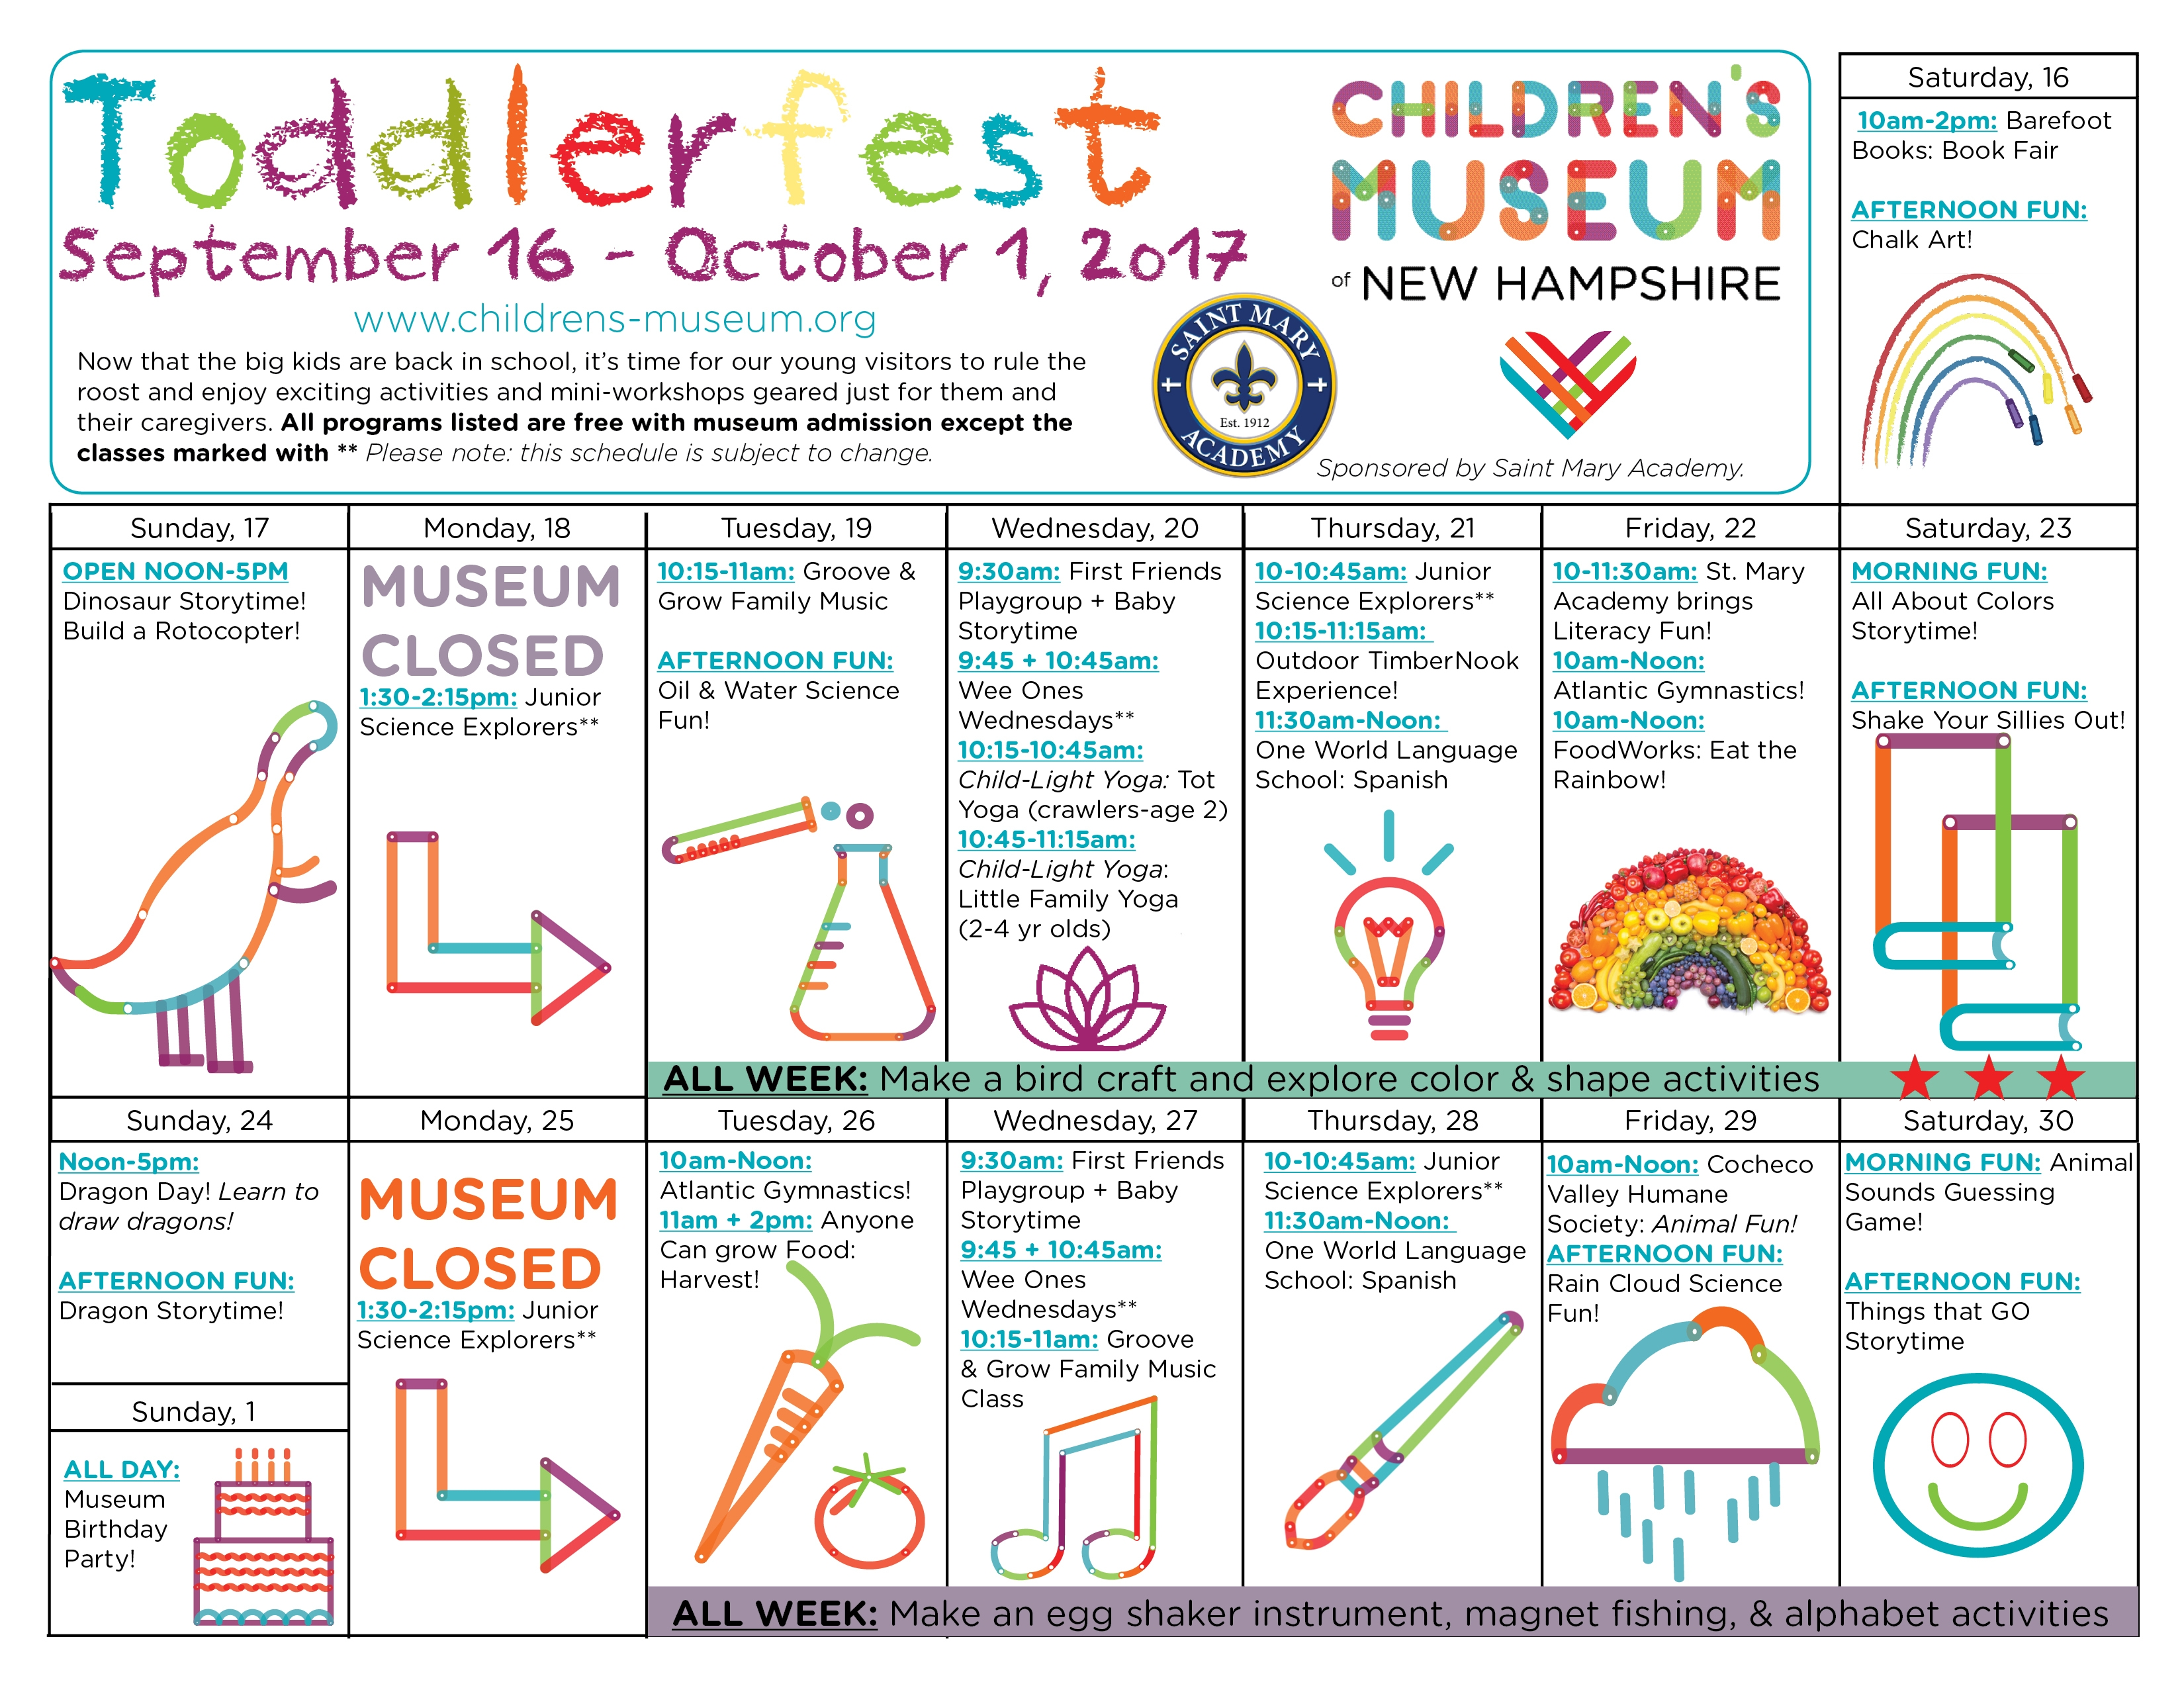 Toddlerfest2017_170912_090437.jpg#asset:6999